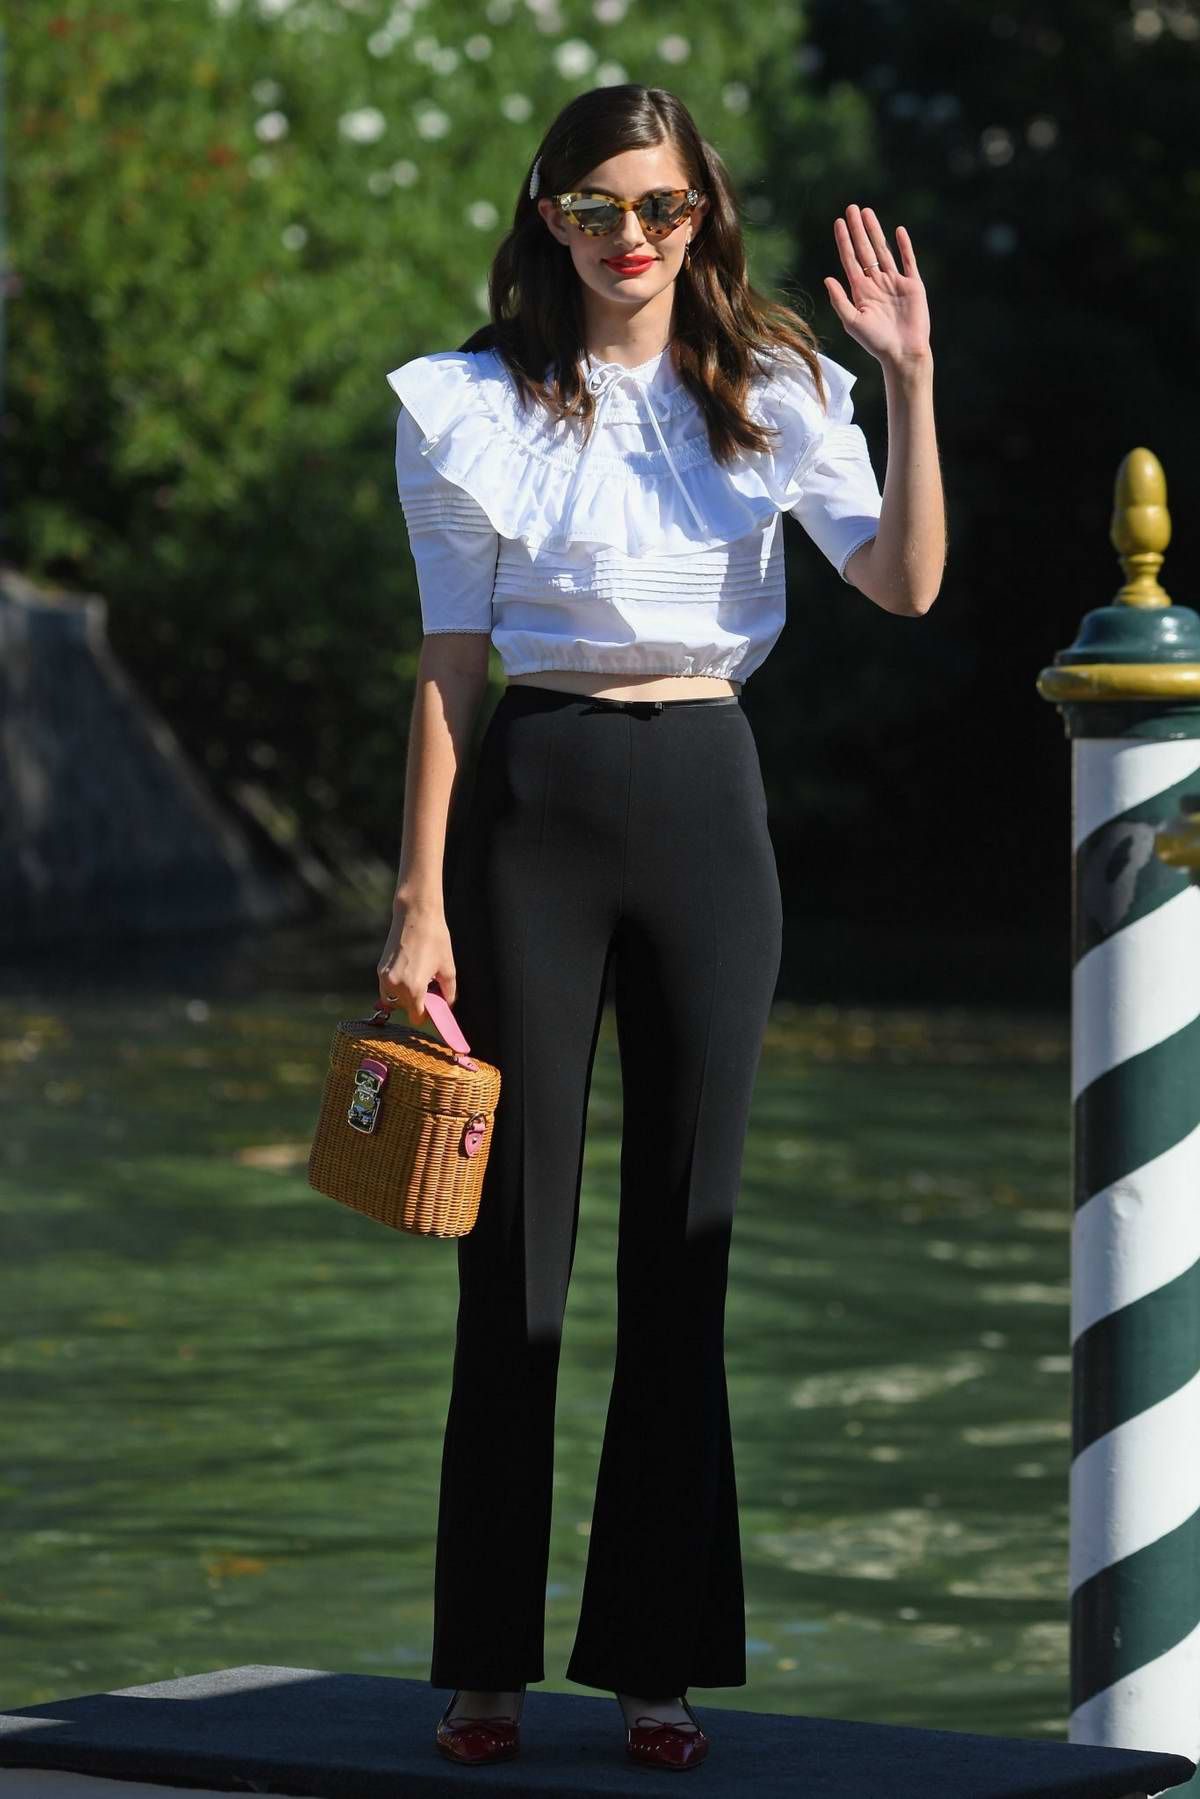 Diana Silvers looks great in black and white ensemble while out during the 76th Venice Film Festival in Venice, Italy